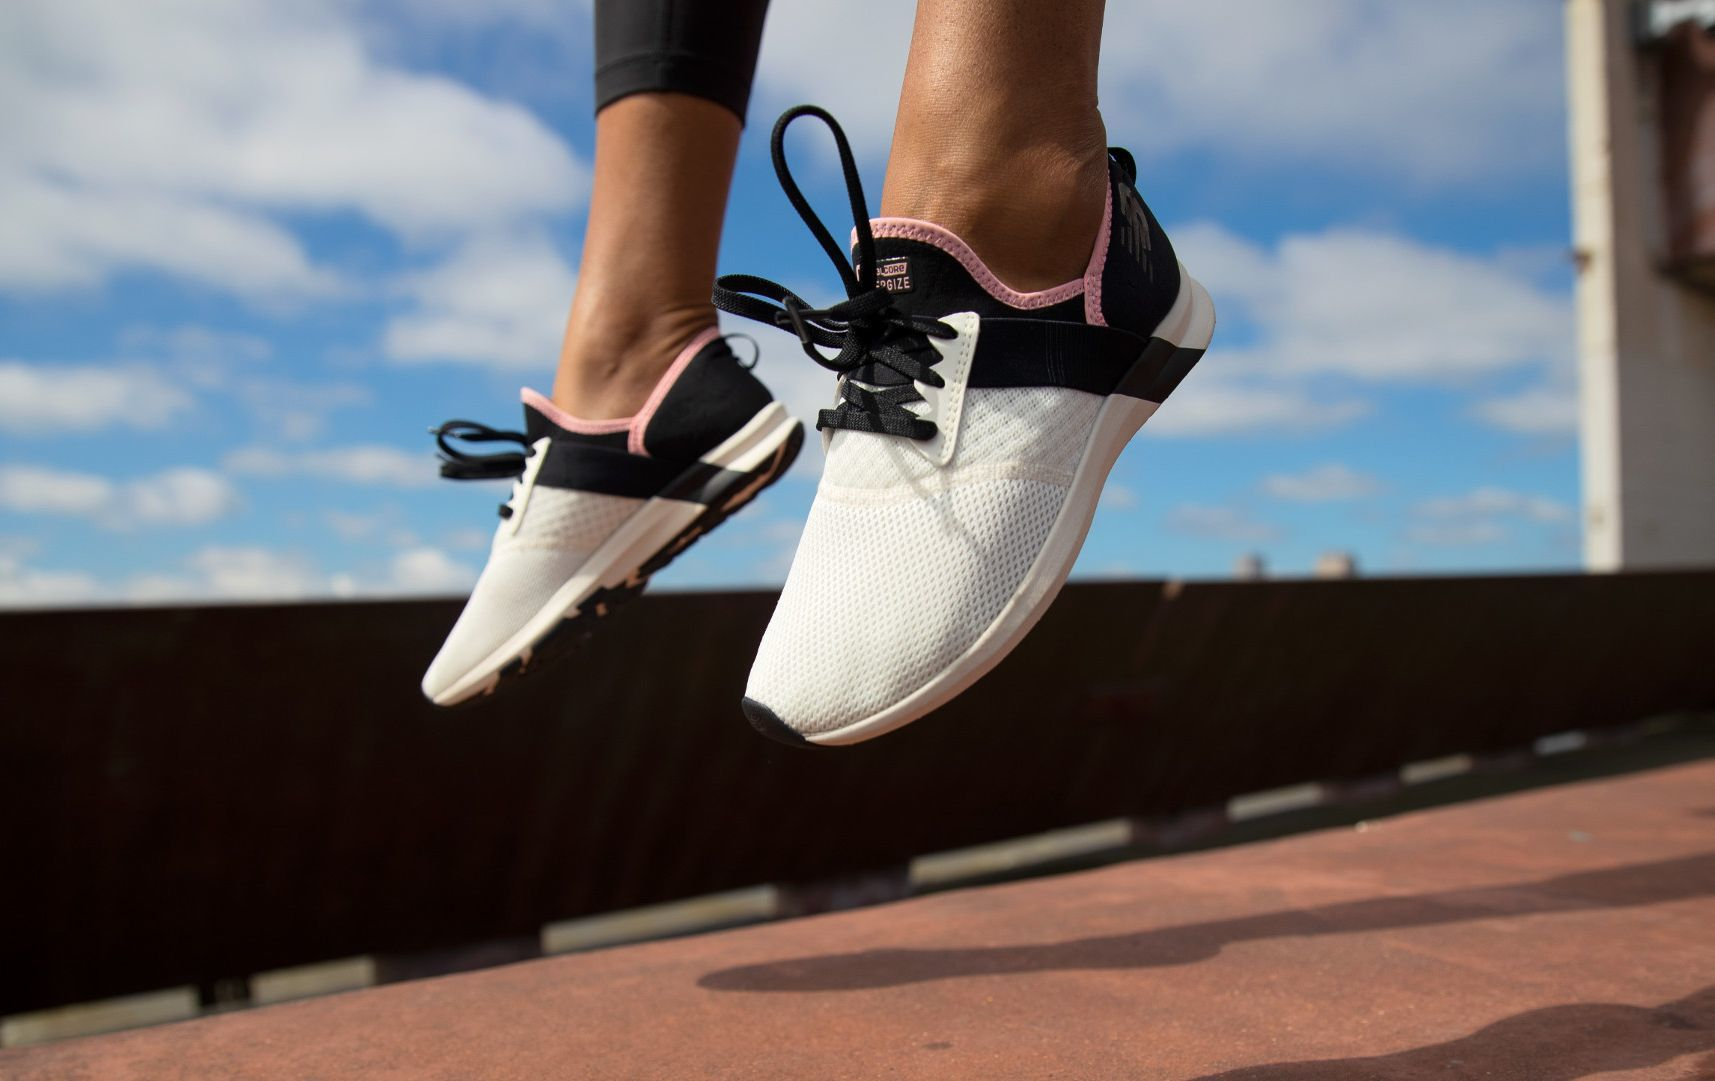 New-Balance-FuelCore-NERGIZE. +80 Most Inspiring Workout Shoes Ideas for Women